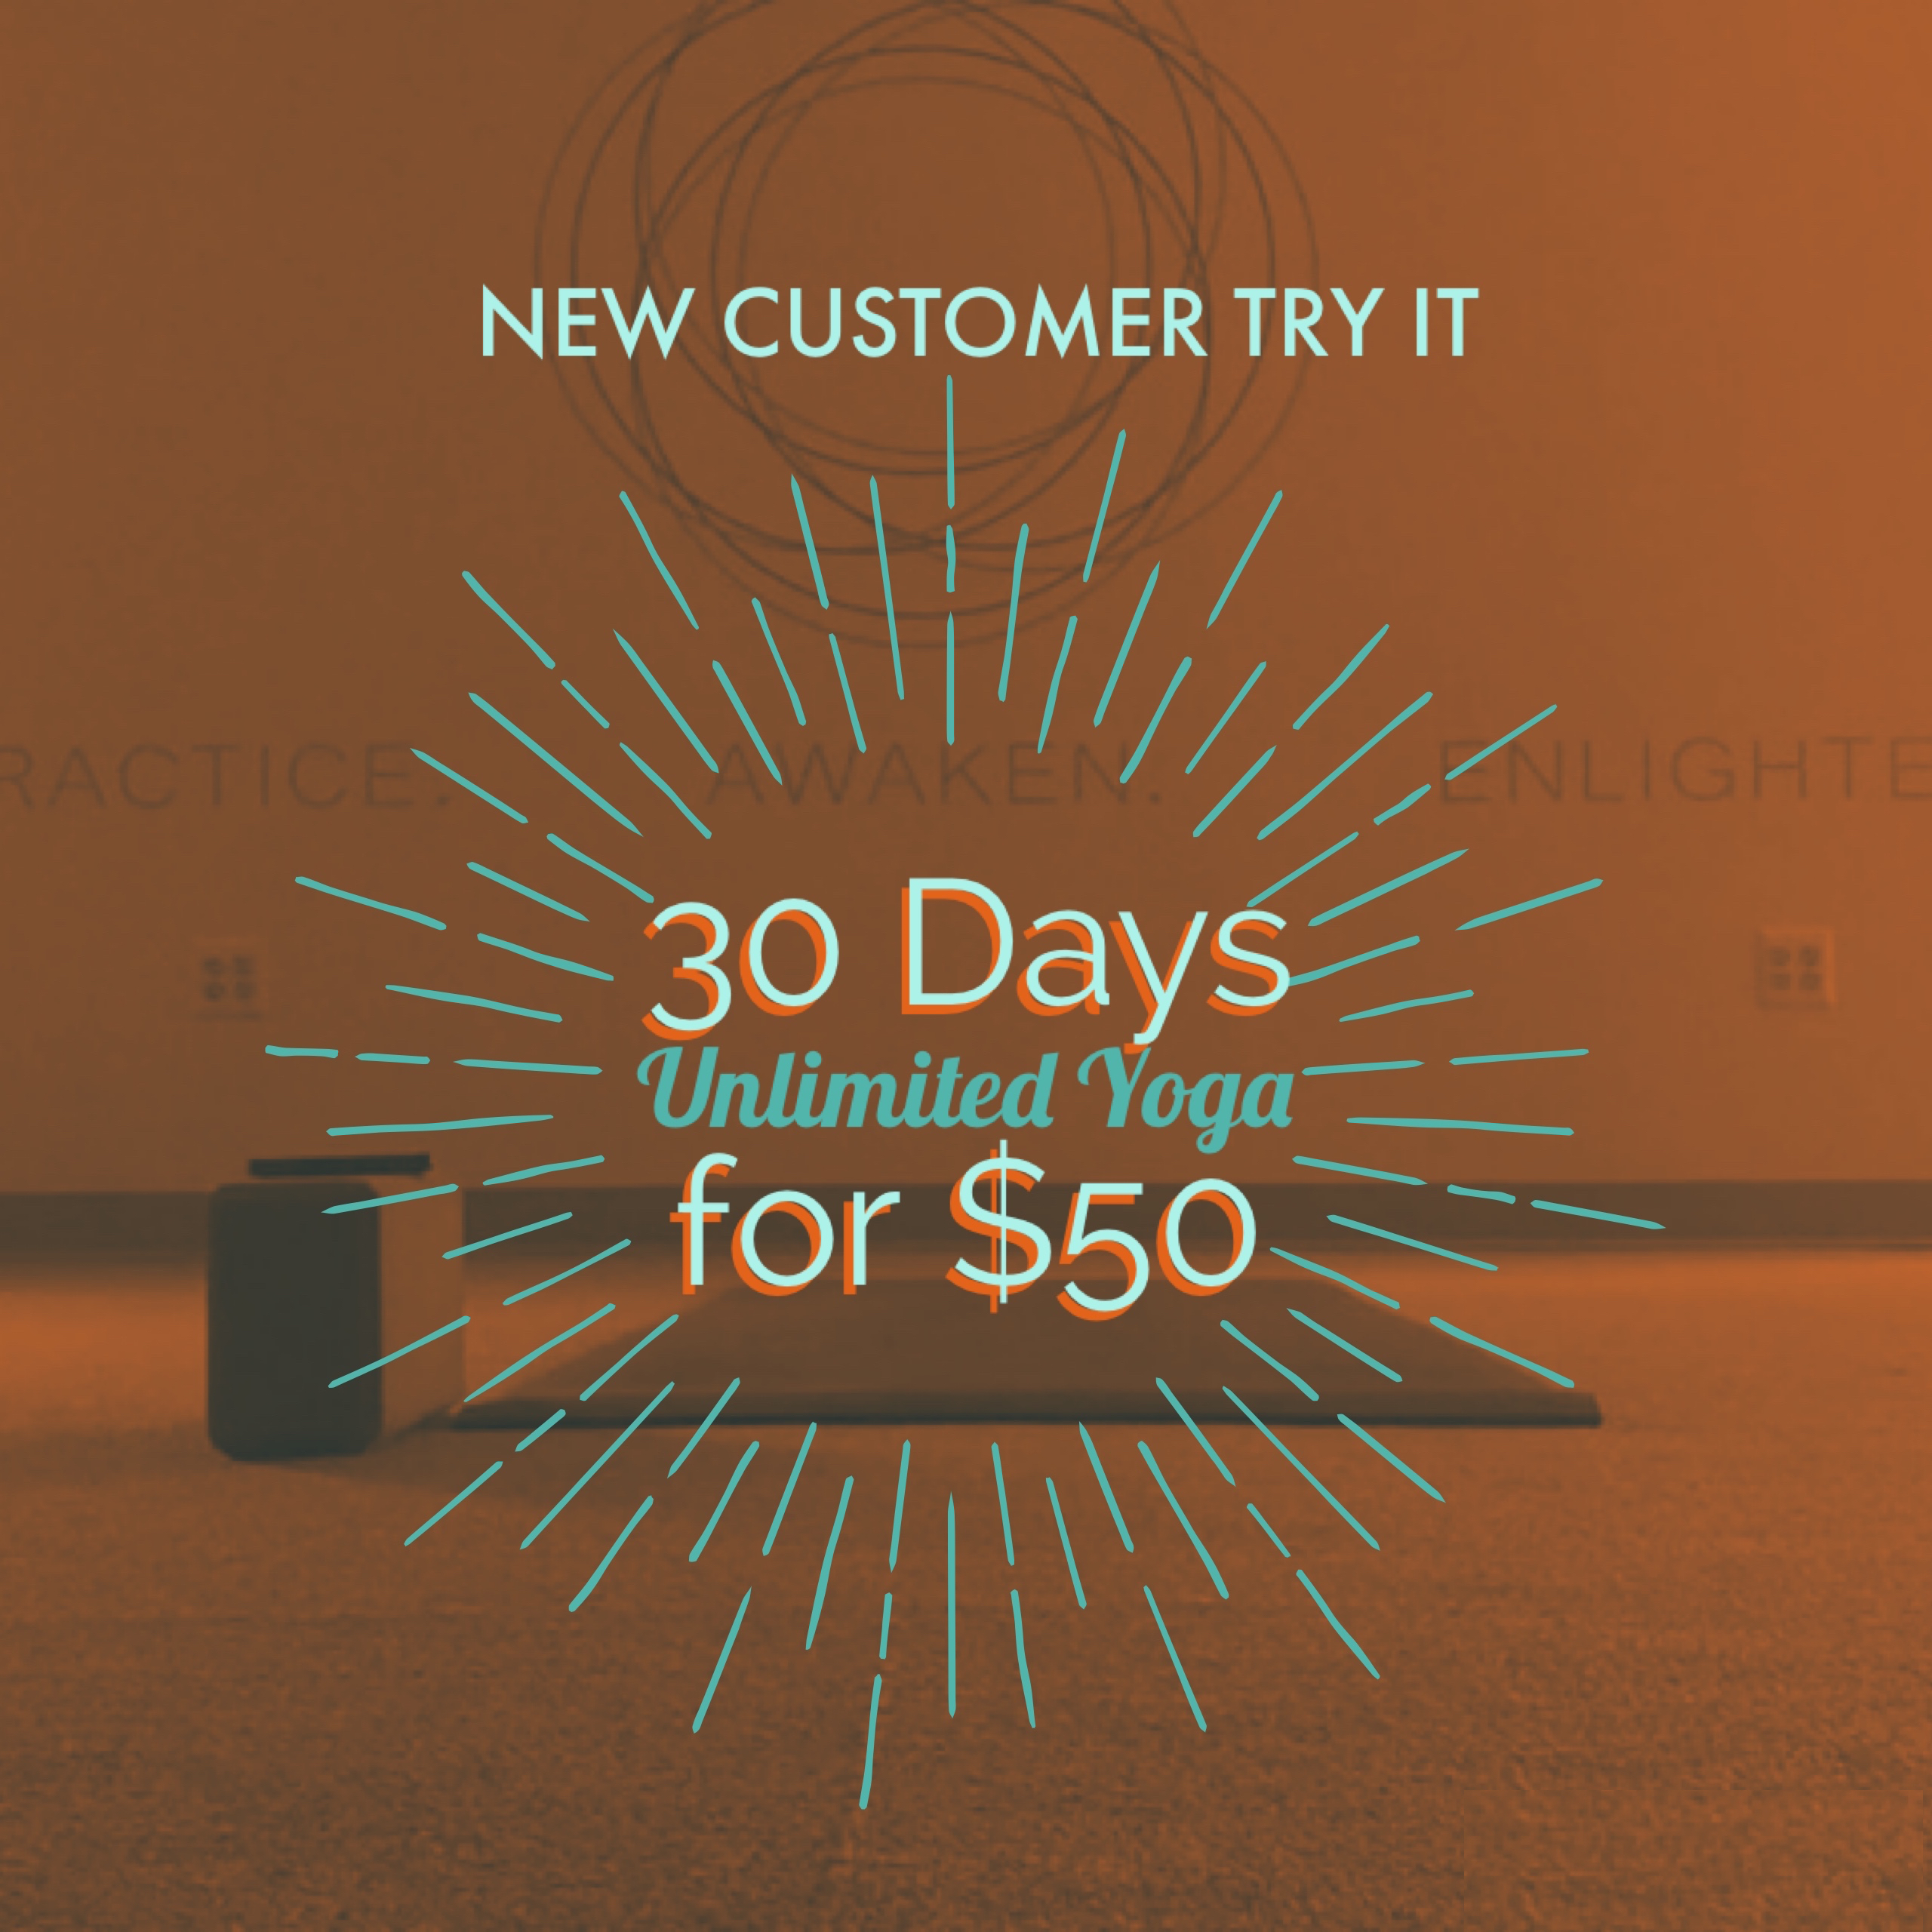 New Student Try It: 30 Days Unlimited Yoga for $50